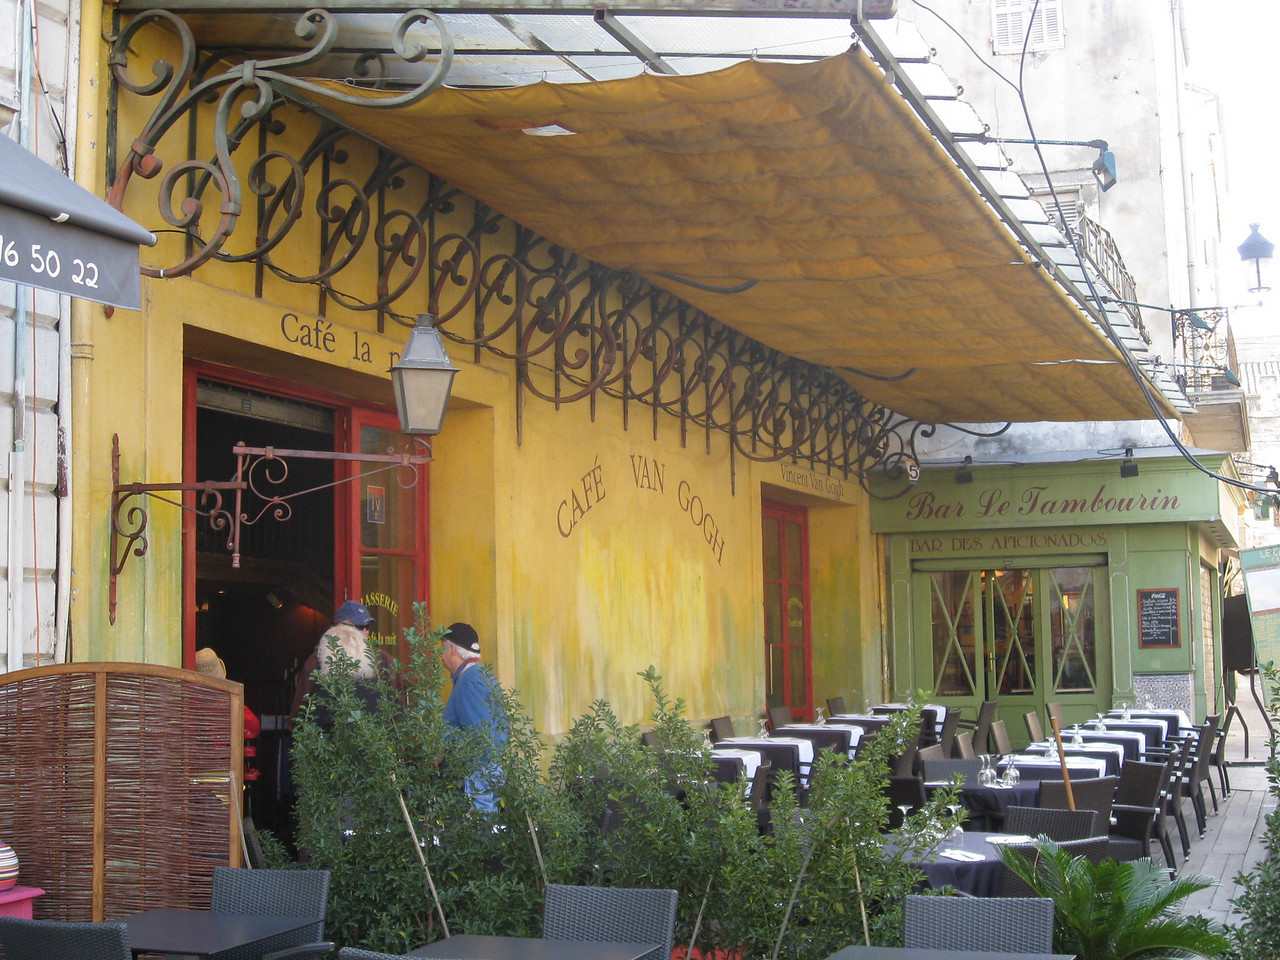 THE ACTUAL RESTAURANT OF WHICH VAN GOGH PAINTED